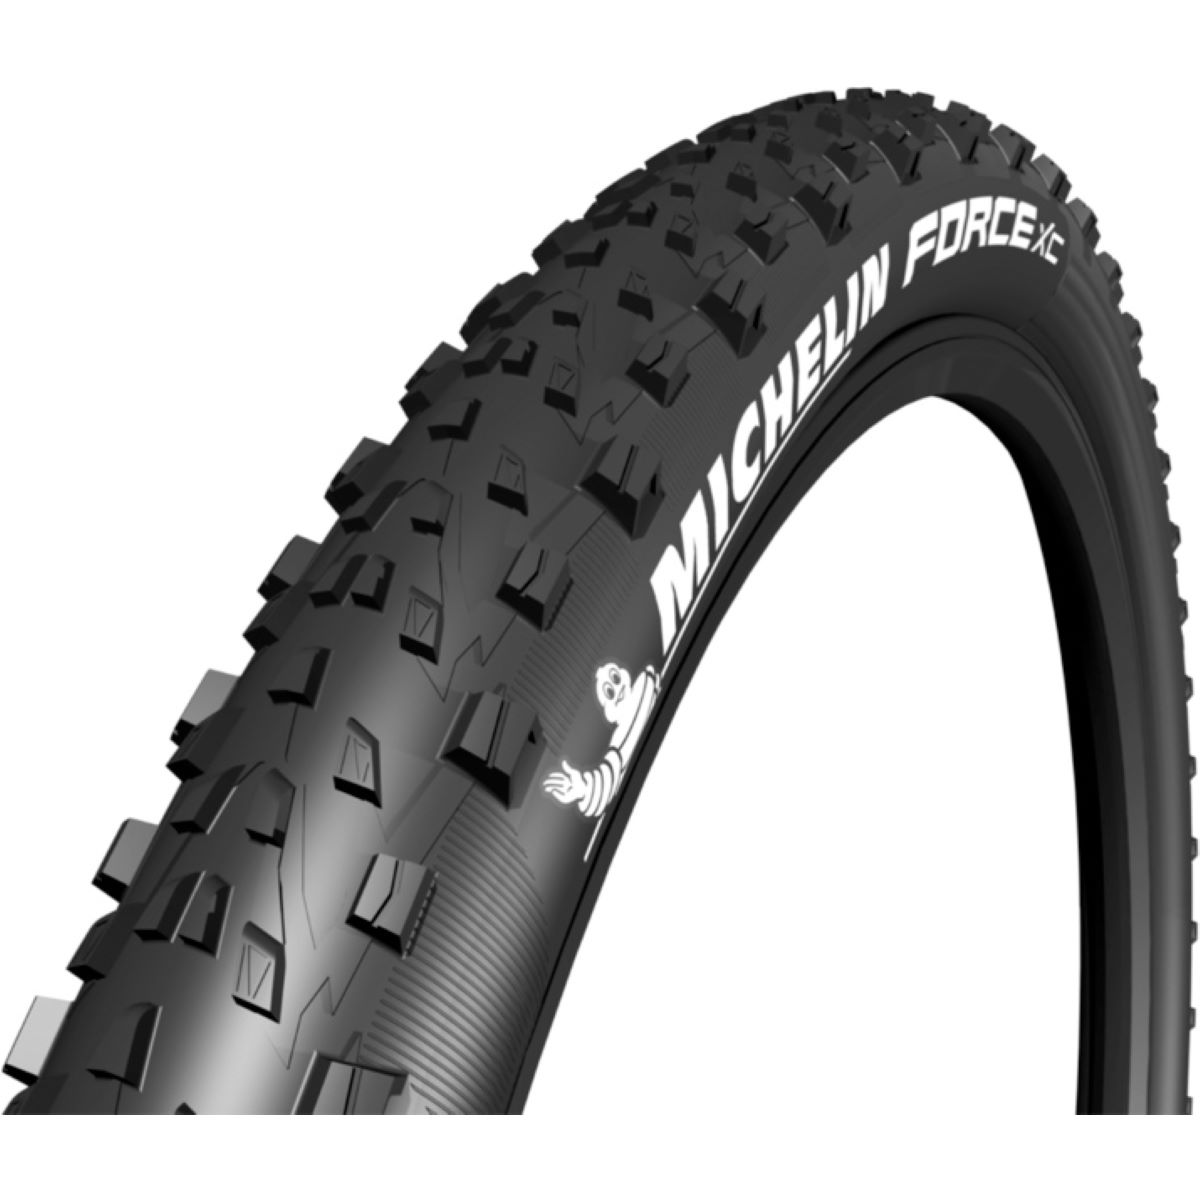 Pneu VTT Michelin Force XC Competition - 2.25' 29' Noir Pneus